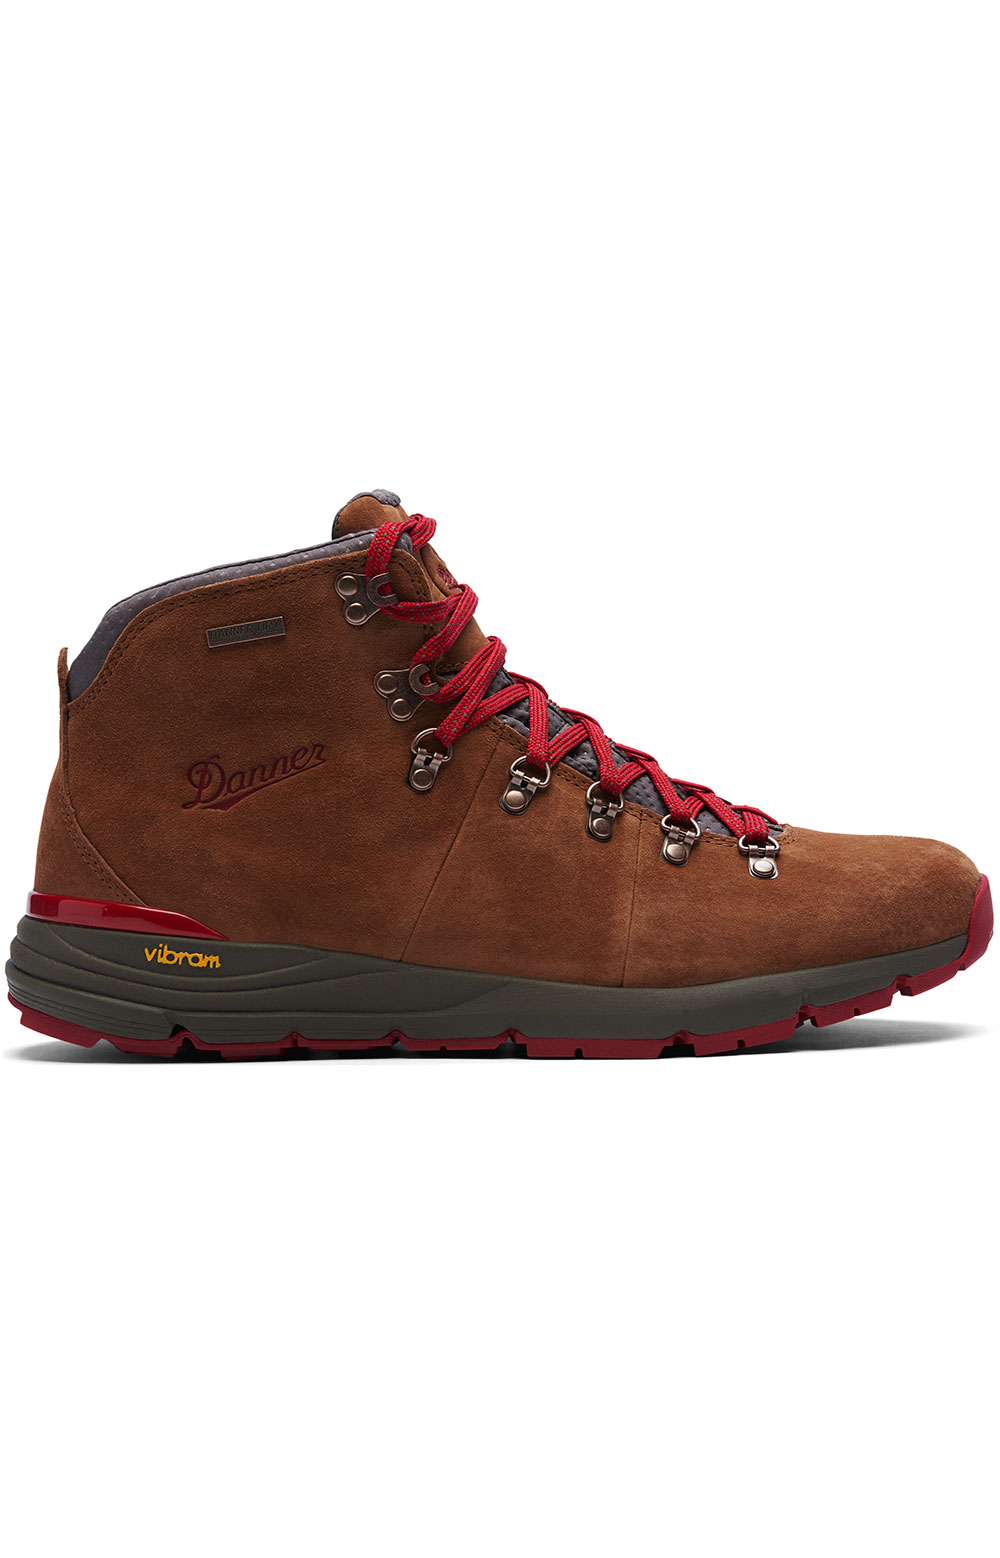 (62241) Mountain 600 Boots - Brown/Red 4